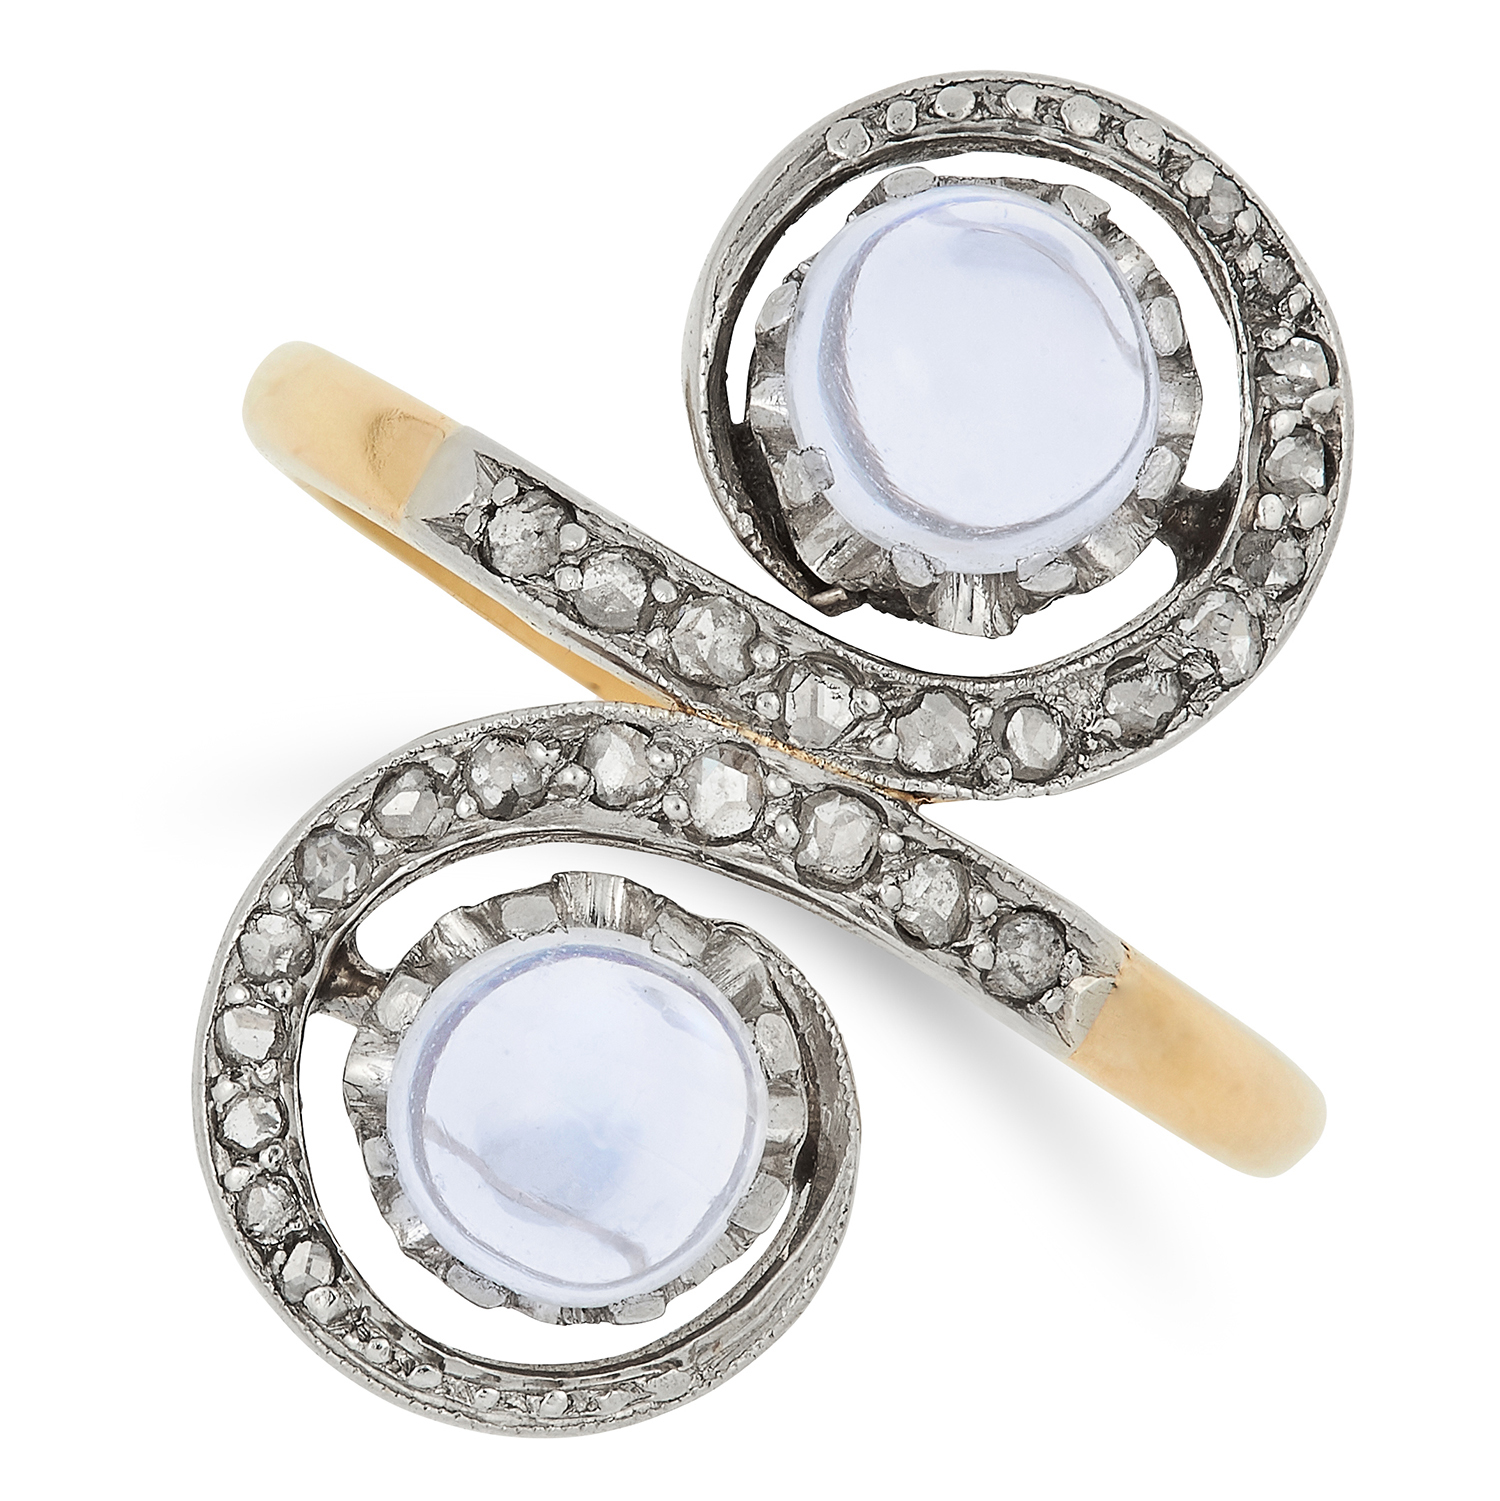 ANTIQUE MOONSTONE AND DIAMOND TOI ET MOI RING set with two cabochon moonstone and rose cut diamonds,